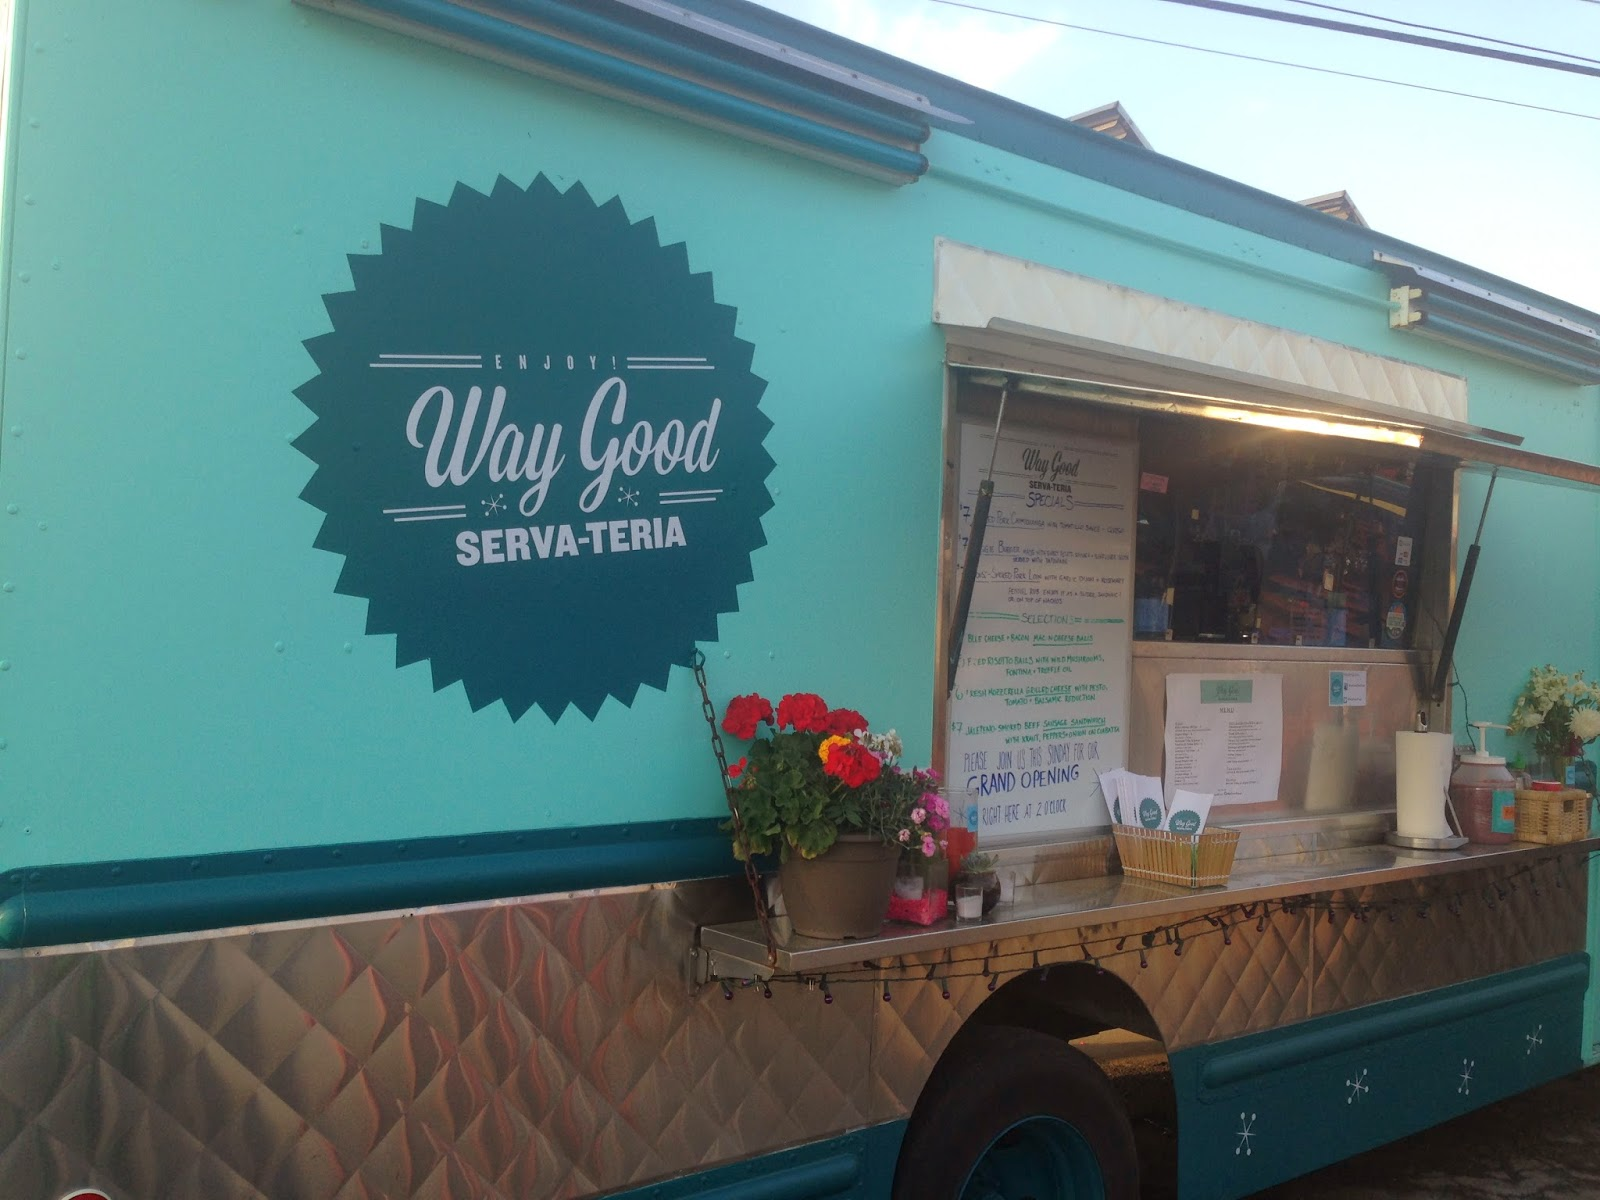 Way Good Serva-Teria, Food Truck Houston TX